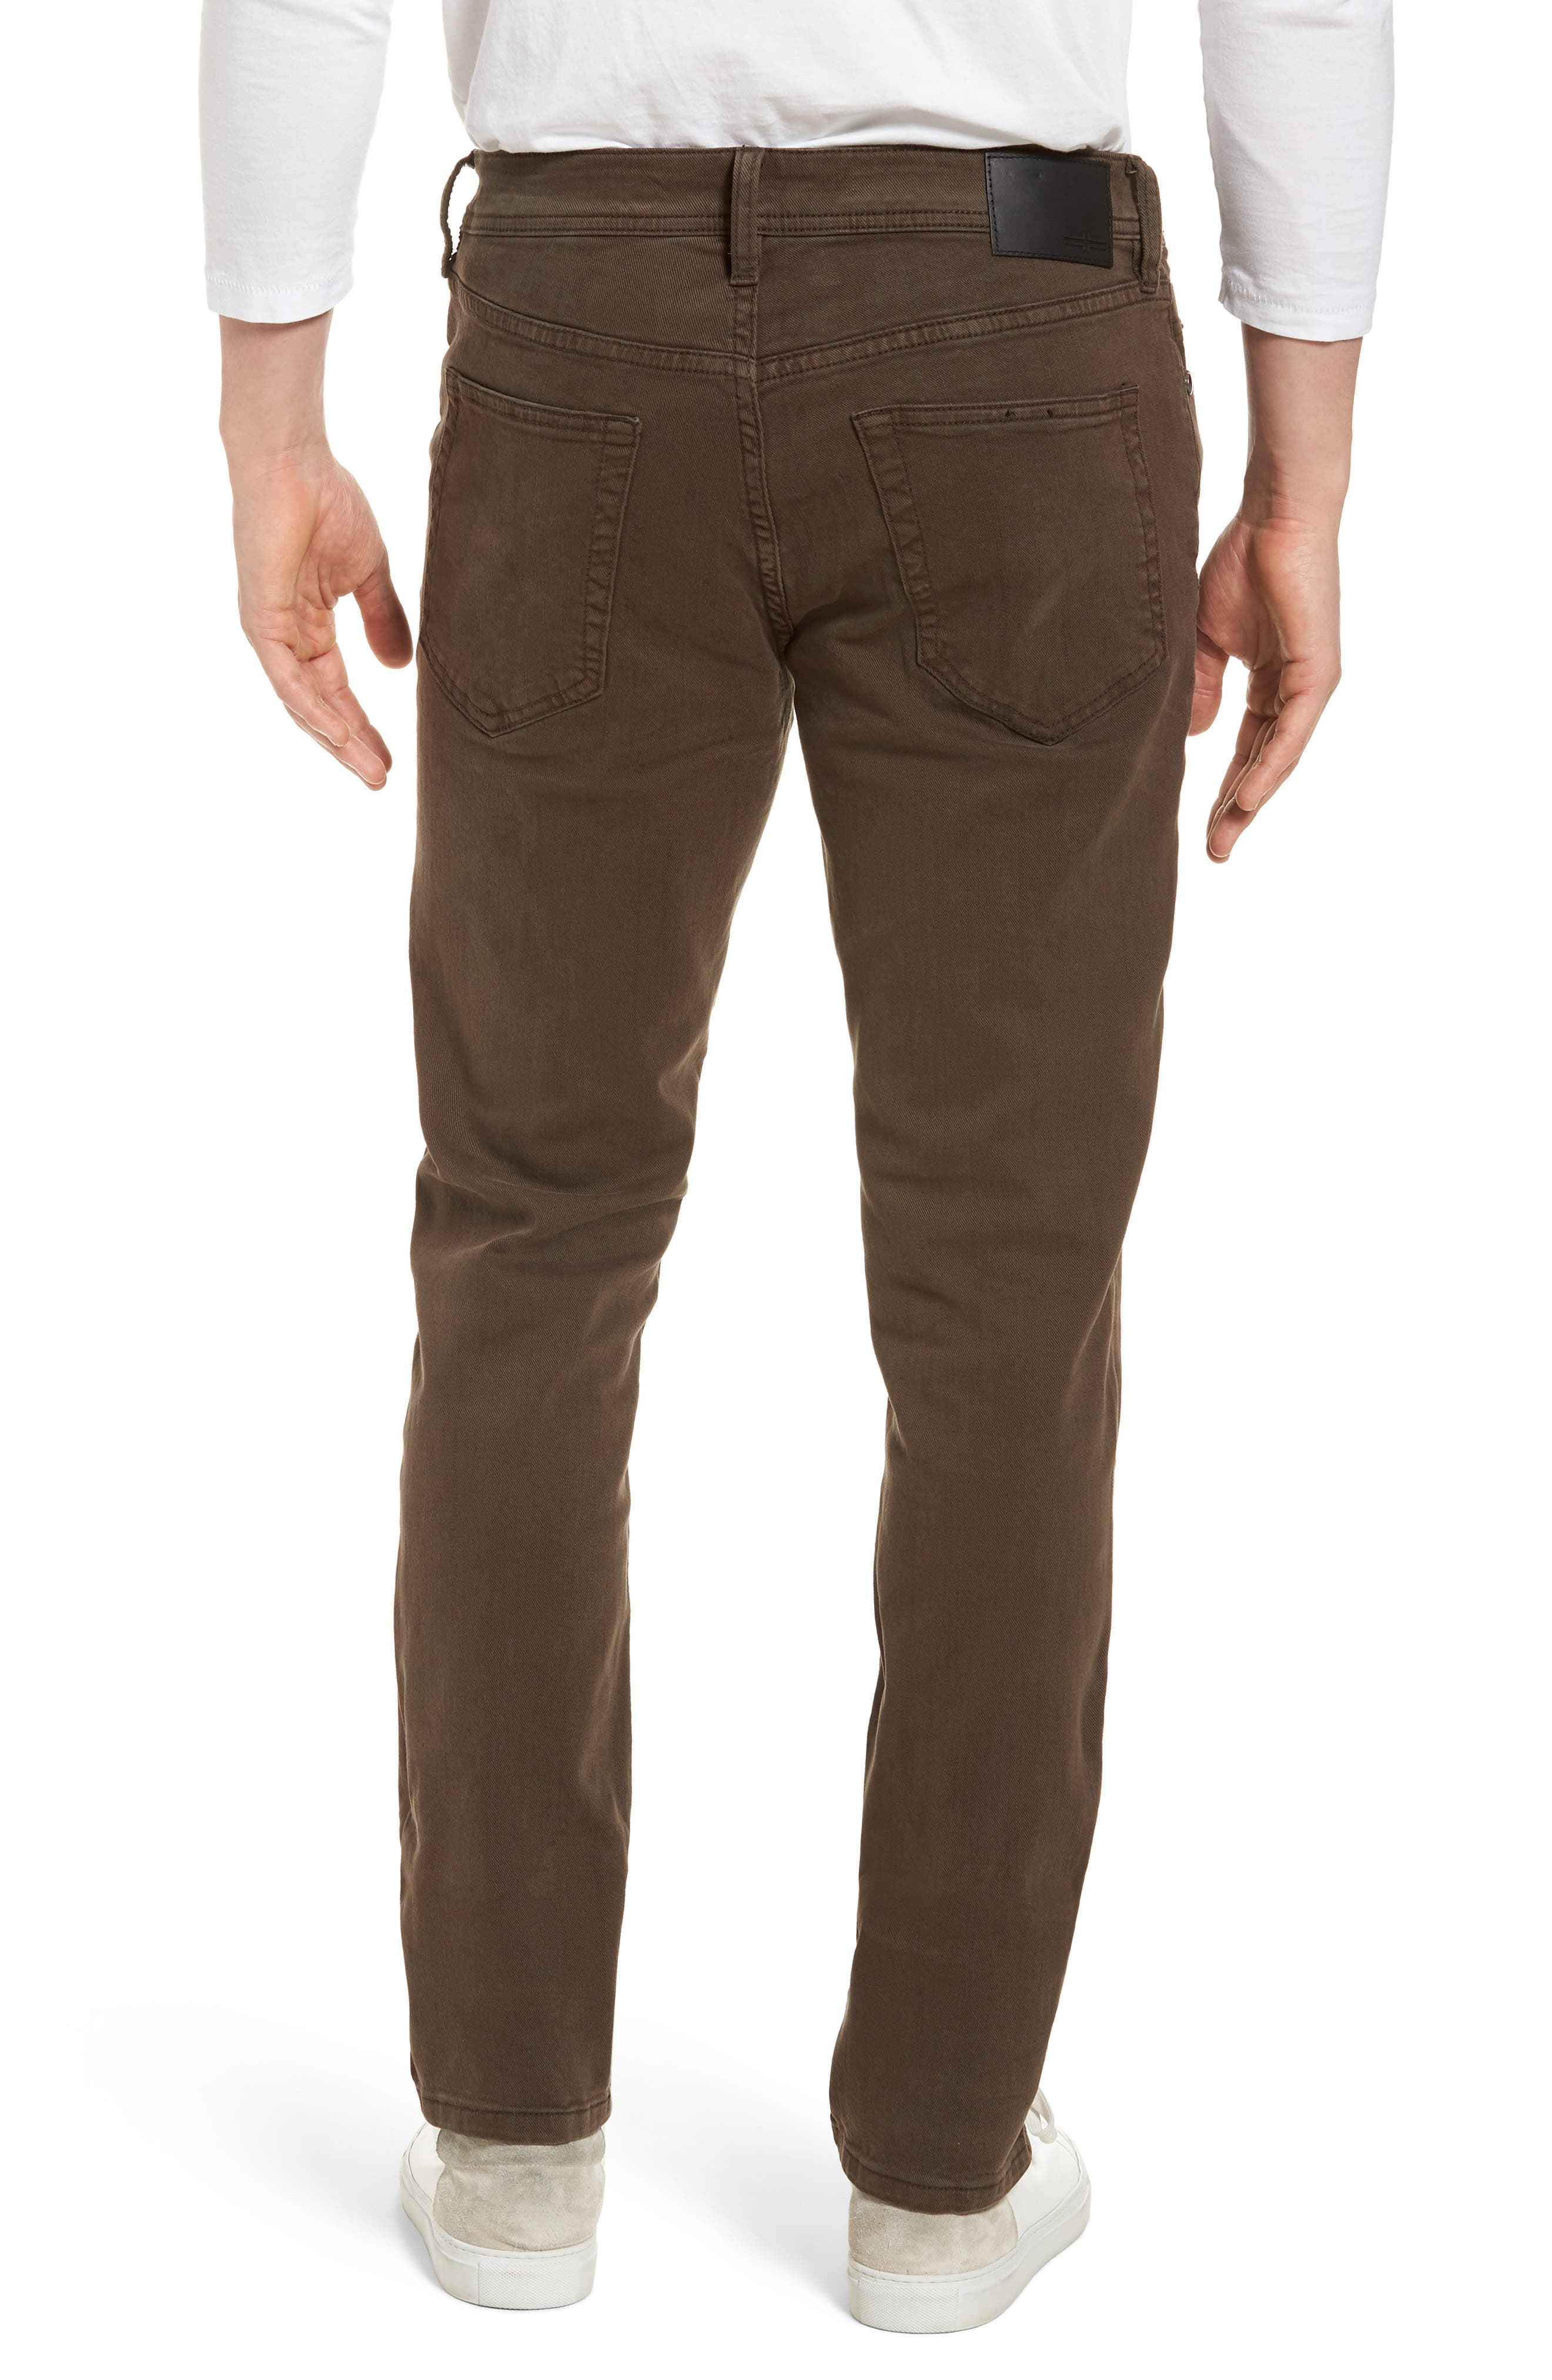 Jeans Co. Kingston Slim Straight Leg Jeans,                             Alternate thumbnail 2, color,                             TOBACCO LEAF